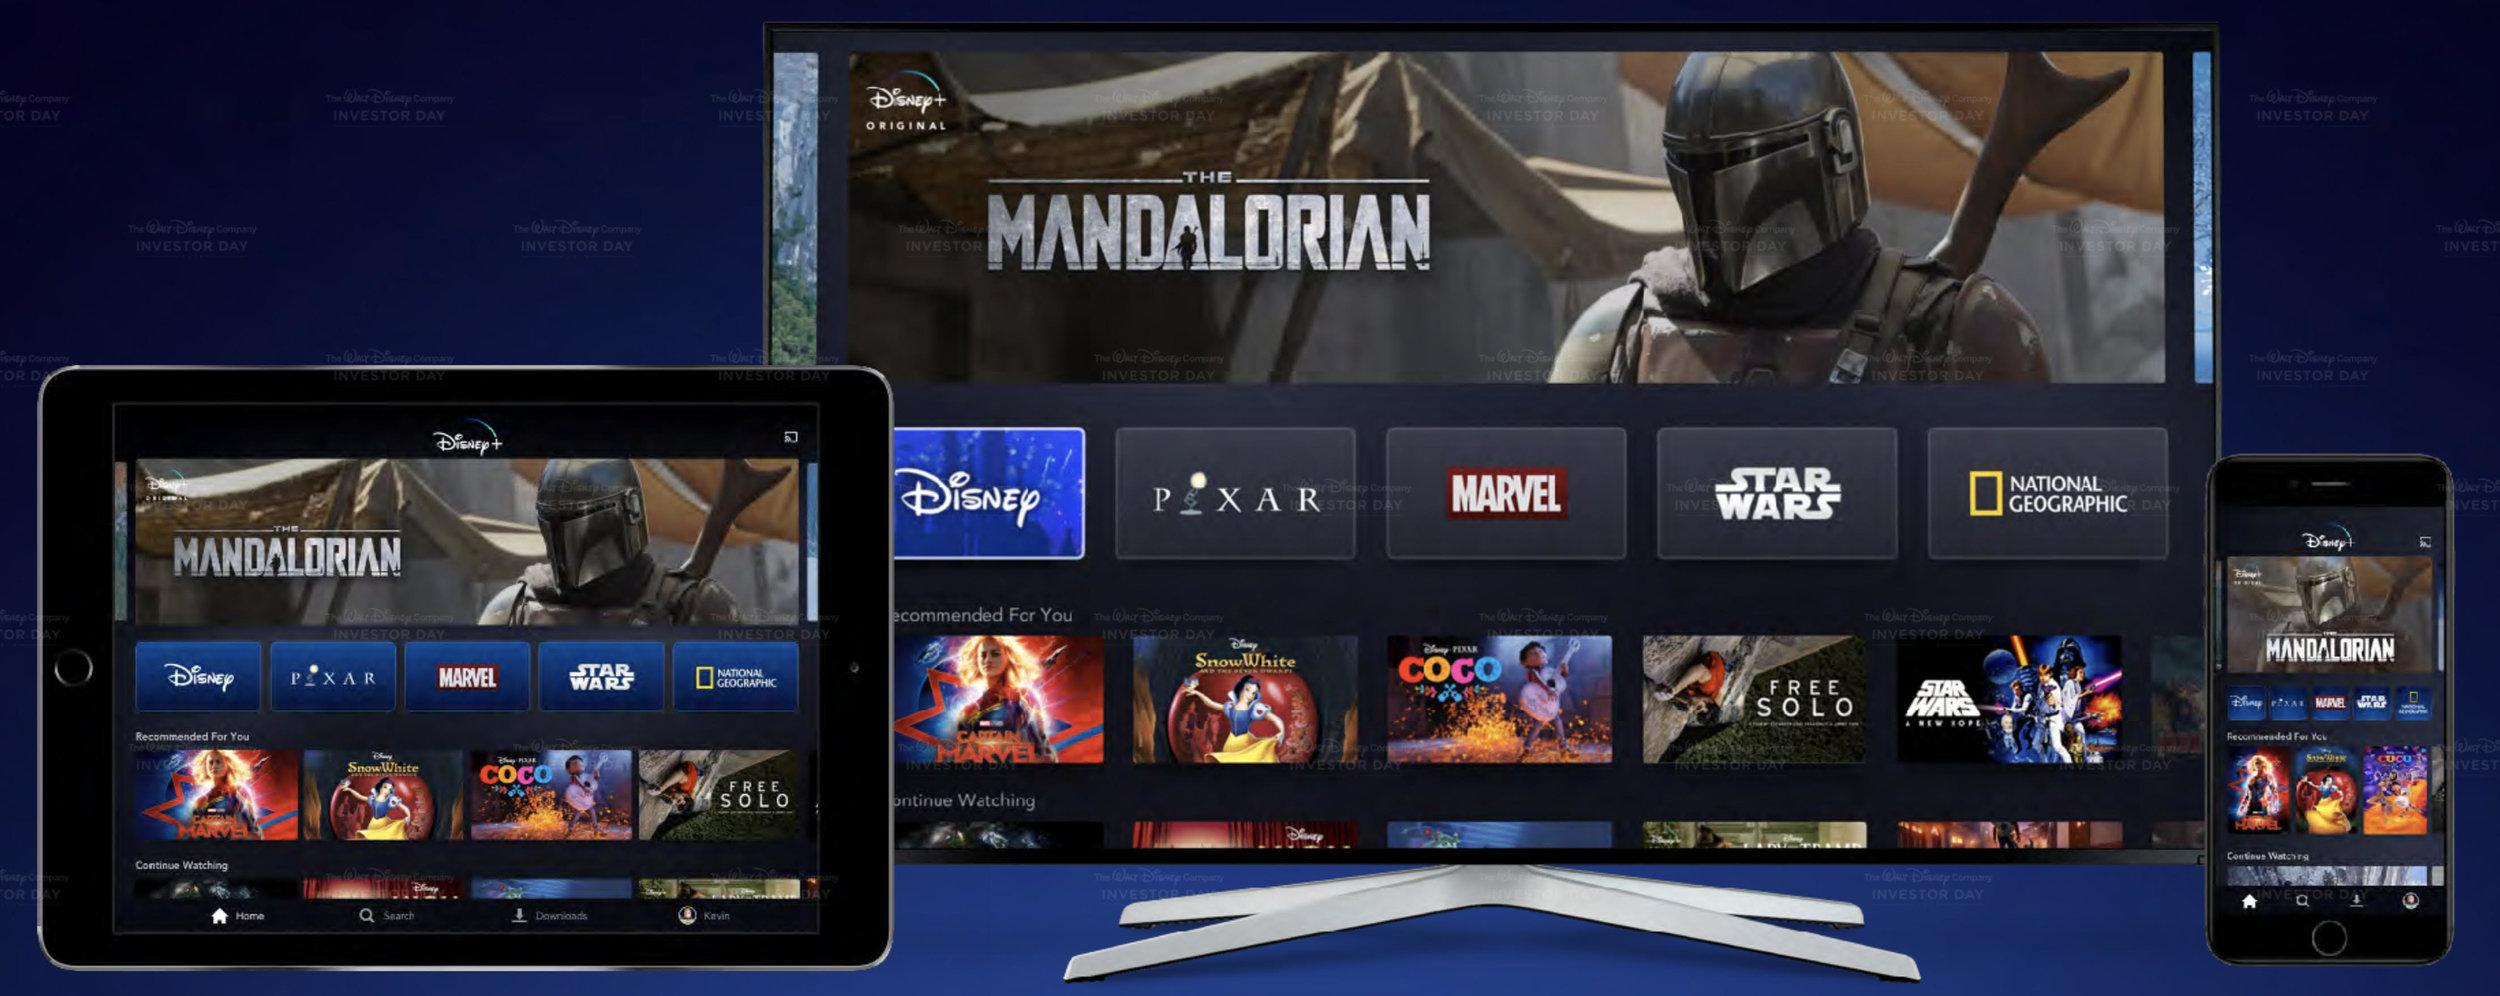 Disney Plus, launching in November in the US and next spring in Europe